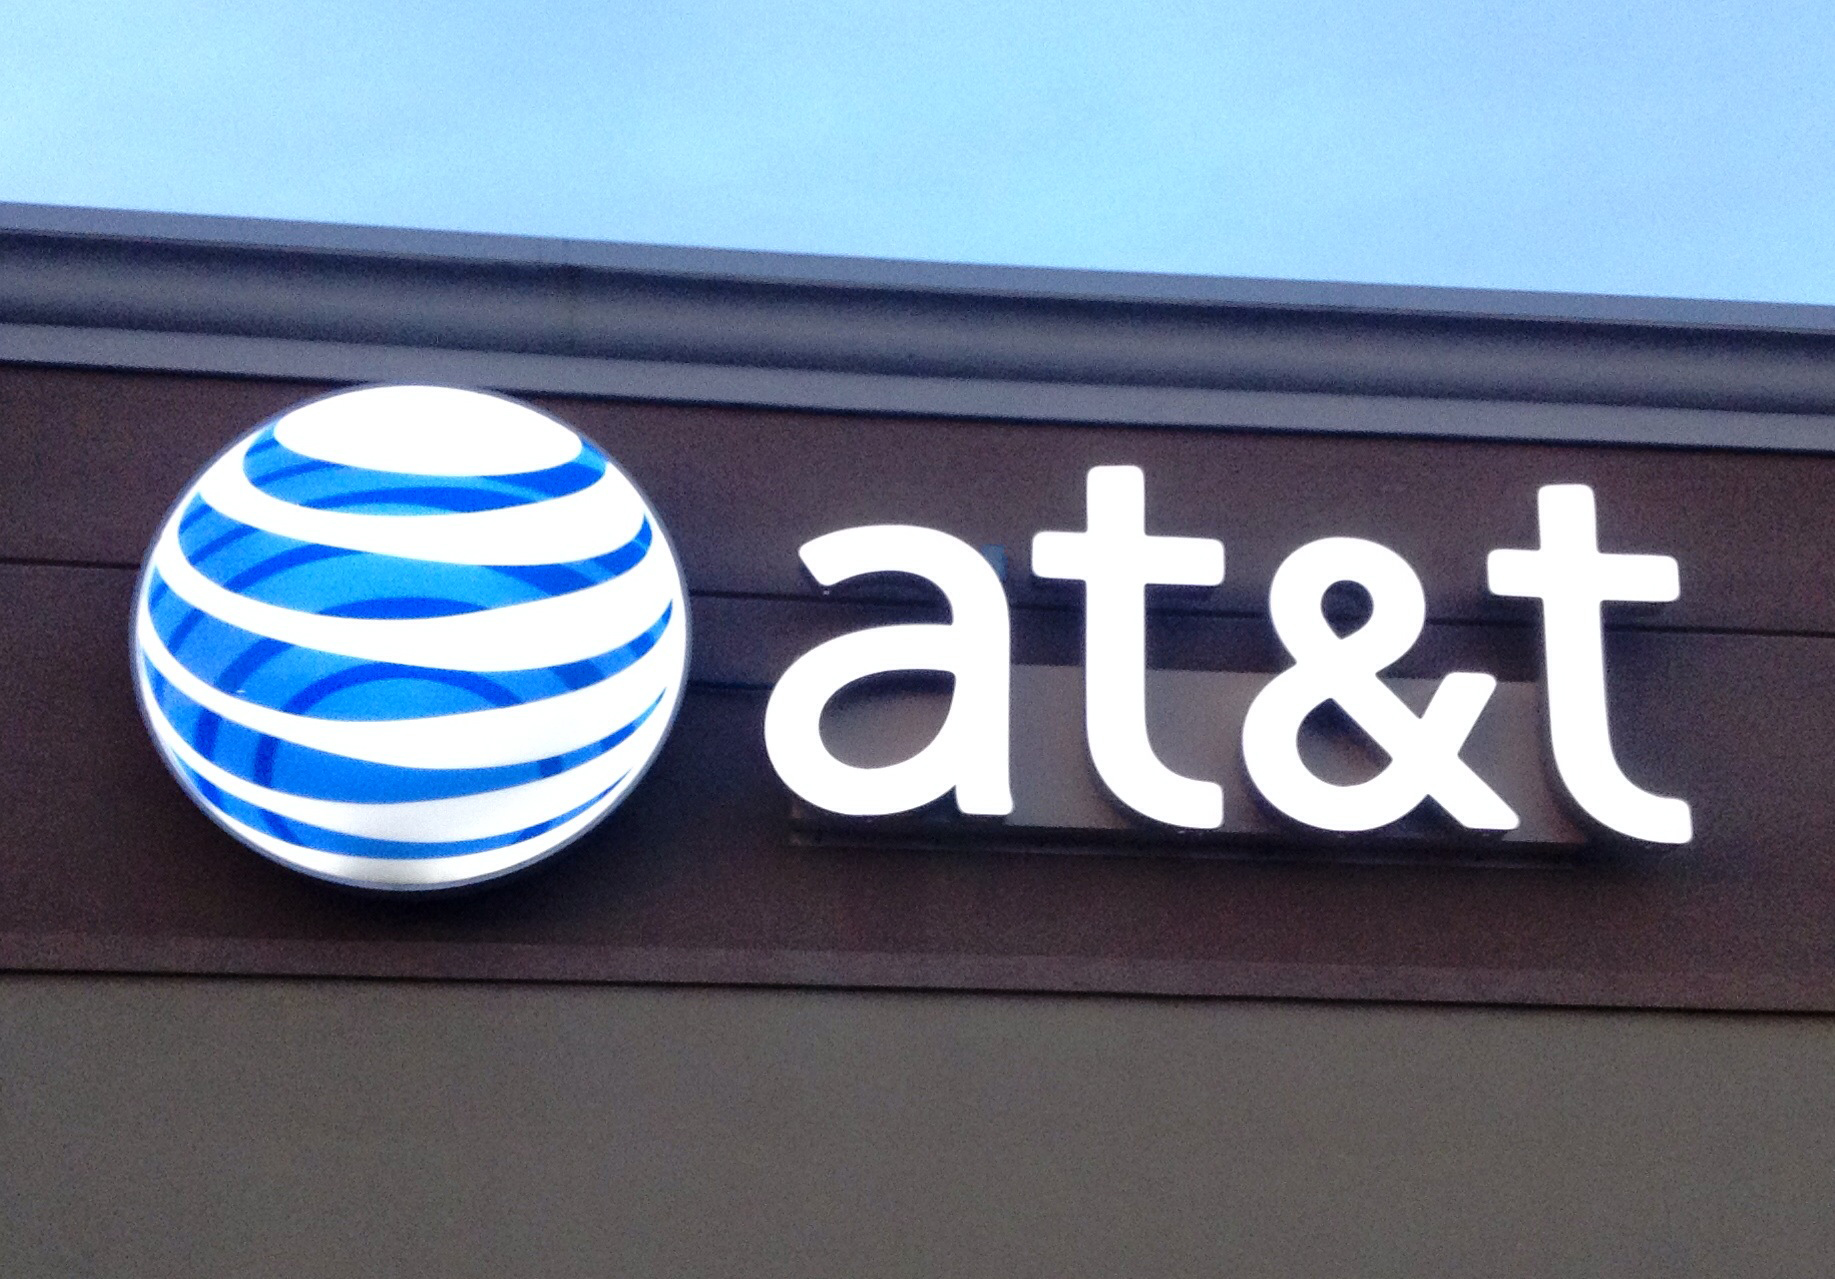 With new iPhones set to arrive soon, AT&T announces revamped data plans